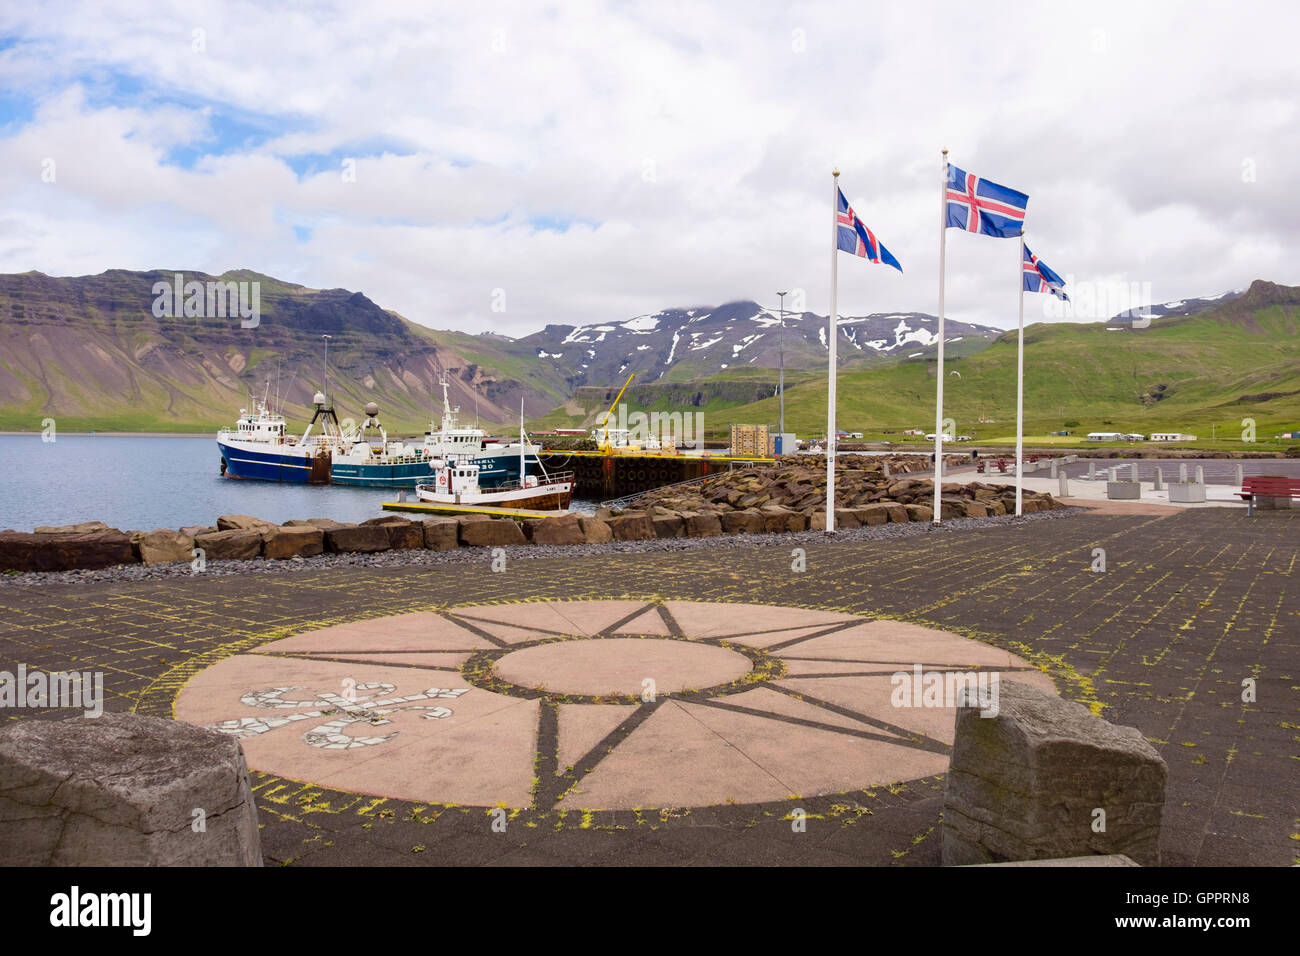 Icelandic flags flying on the quay with fishing boats moored in the harbour. Grundarfjordur, Snaefellsnes Peninsula, - Stock Image